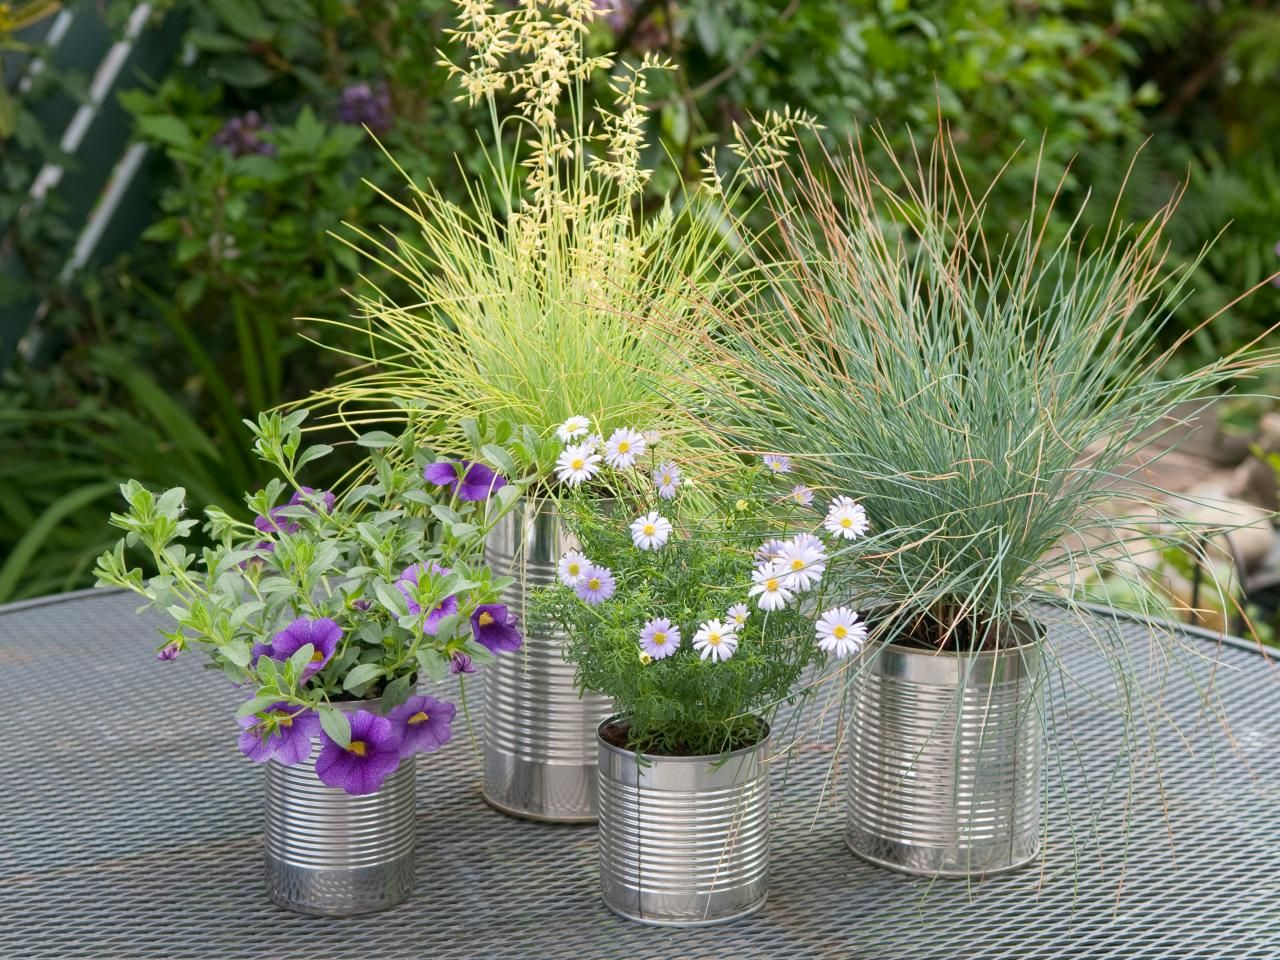 anything tons created ideas was plants is well to containers your my design wine repurposed and favorite an for beautiful garden here a mini sponge places that from great one old visit barrel of